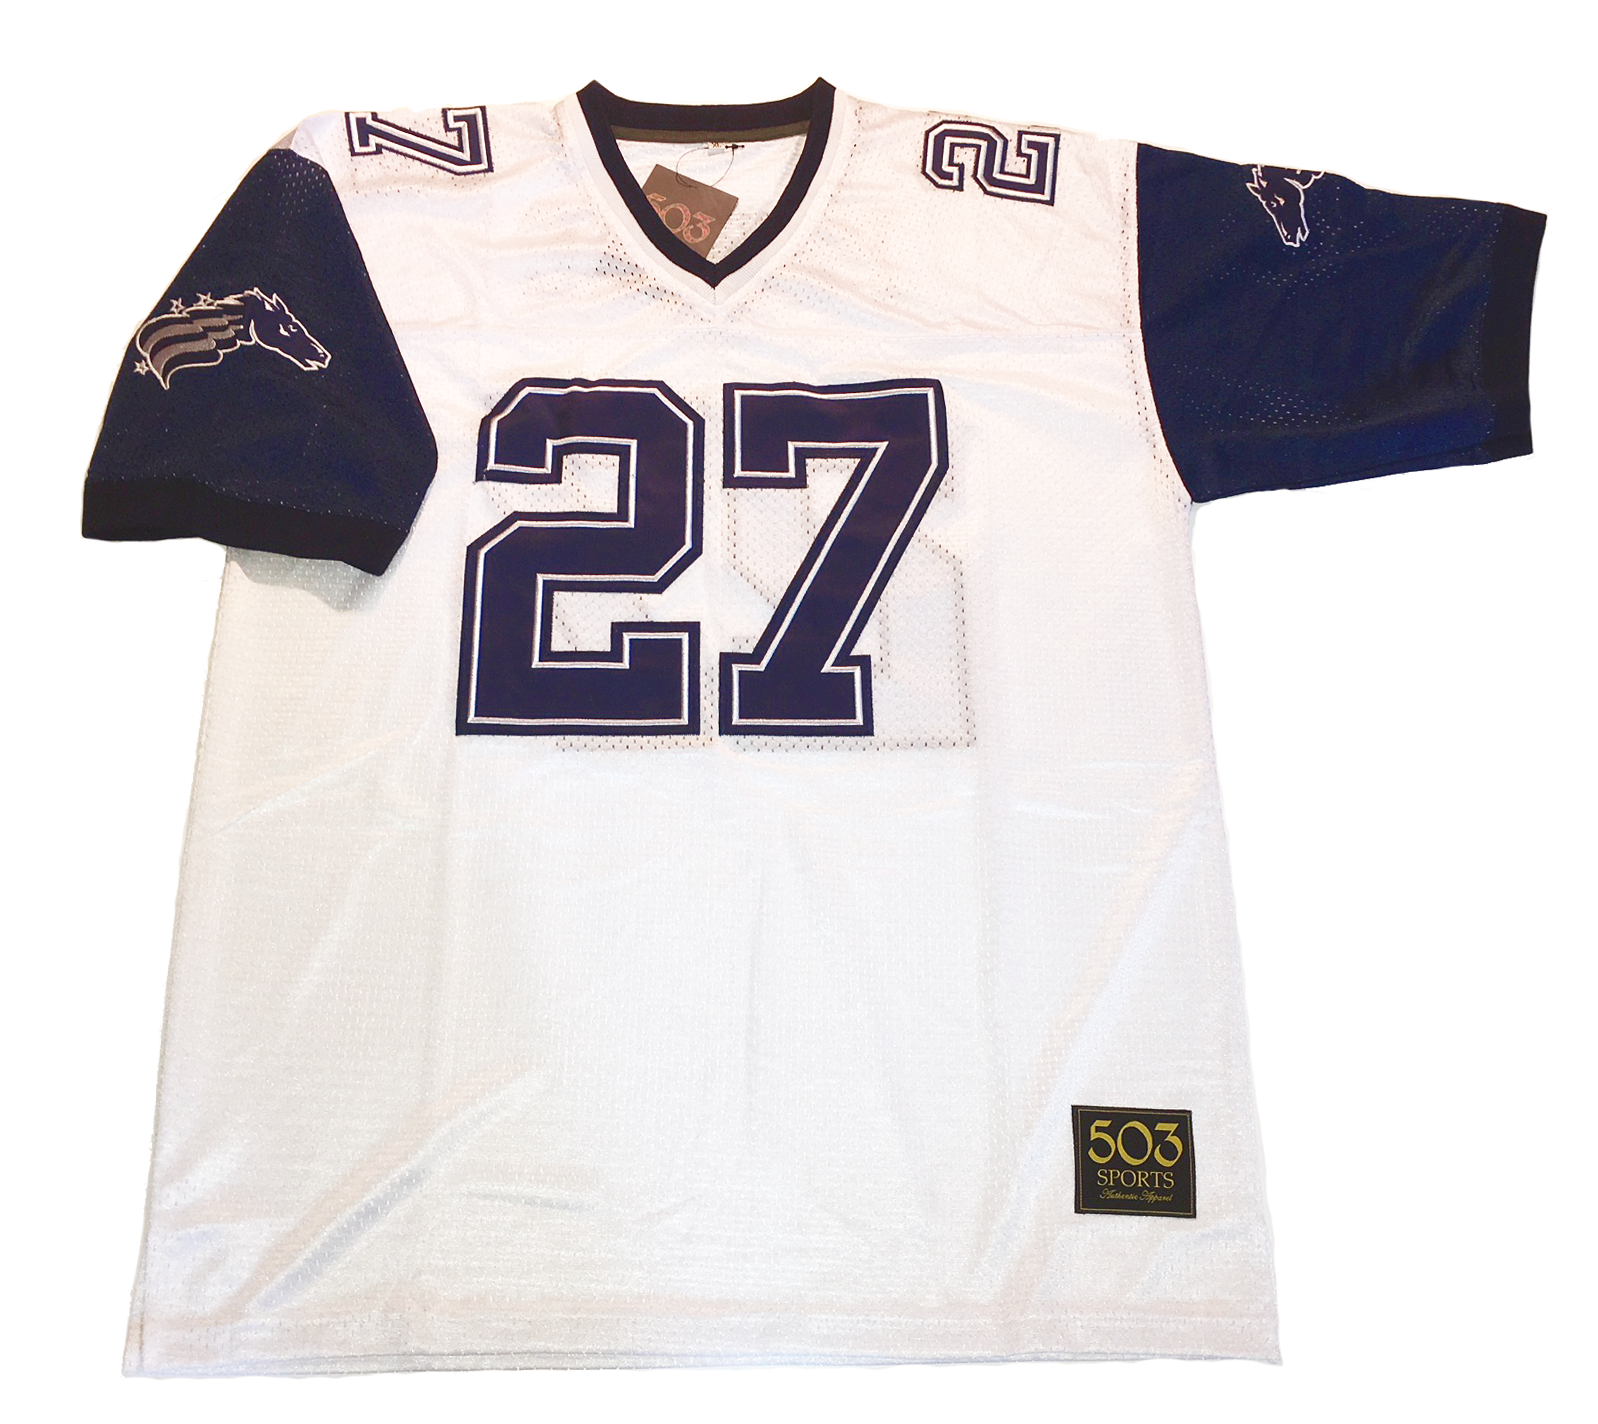 baltimore_stallions_white_jersey_pringle_1024x1024@2x.png